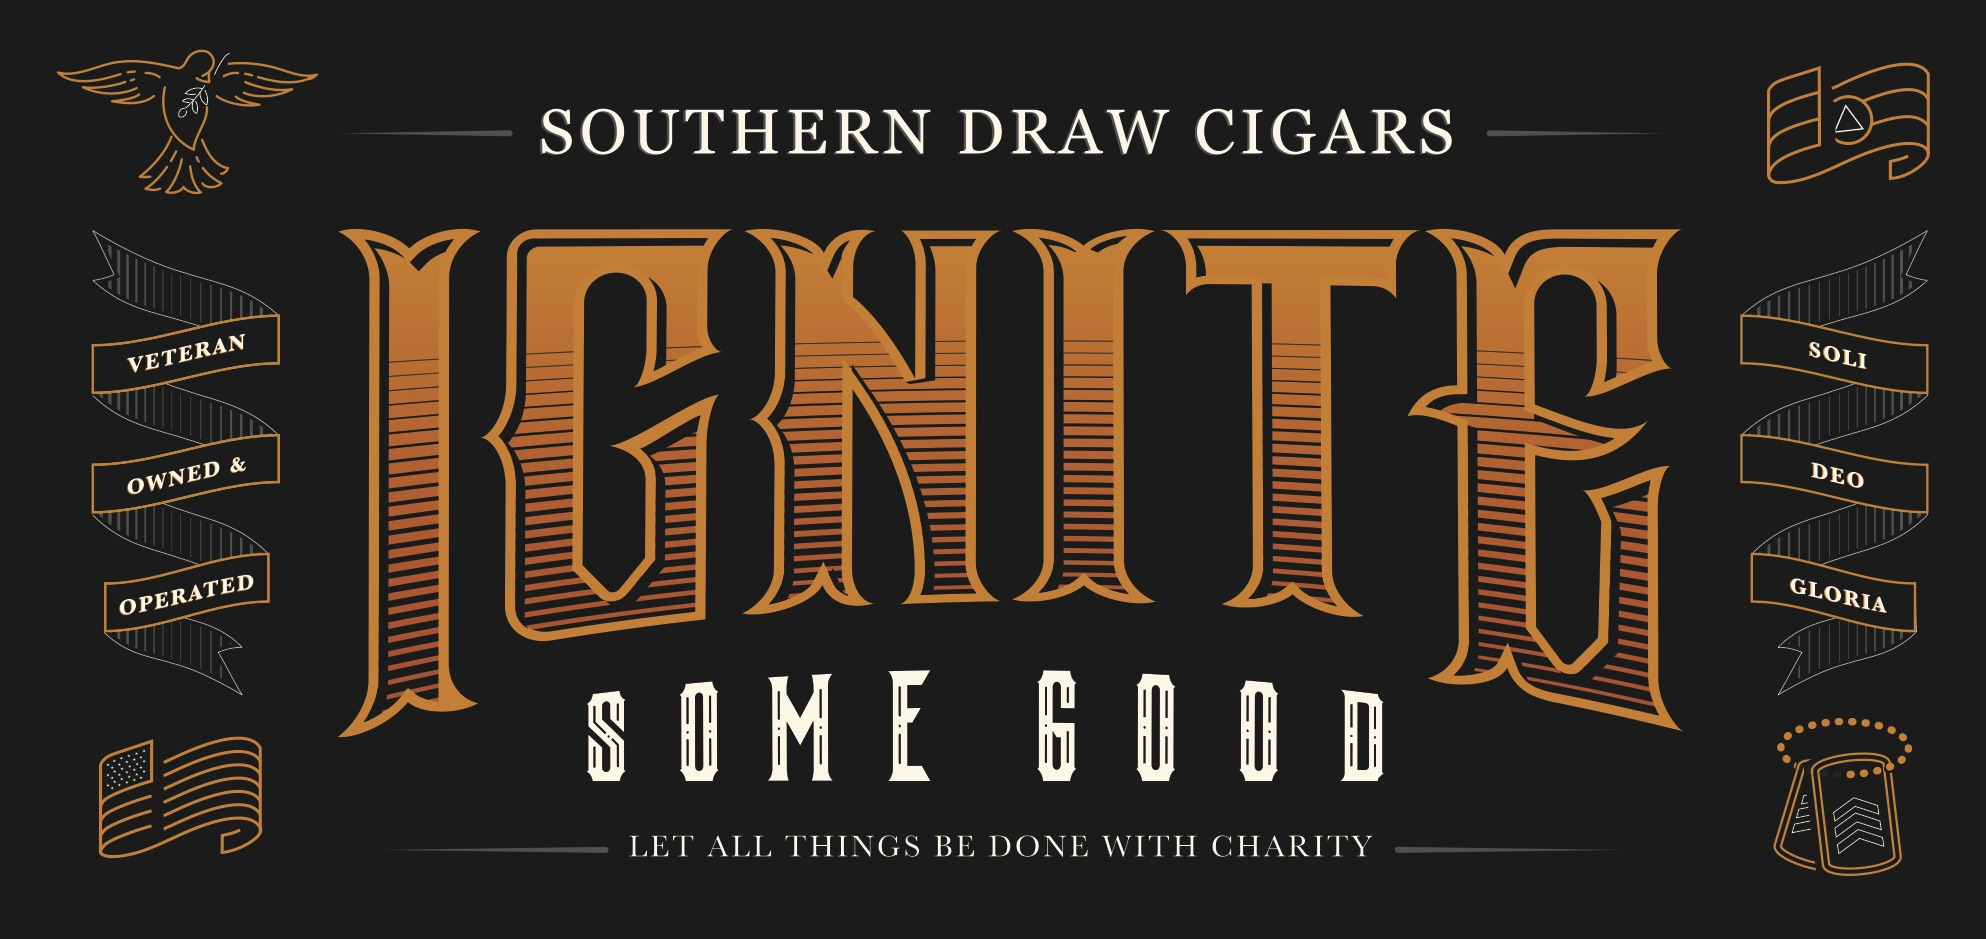 Southern Draw Ignite Label